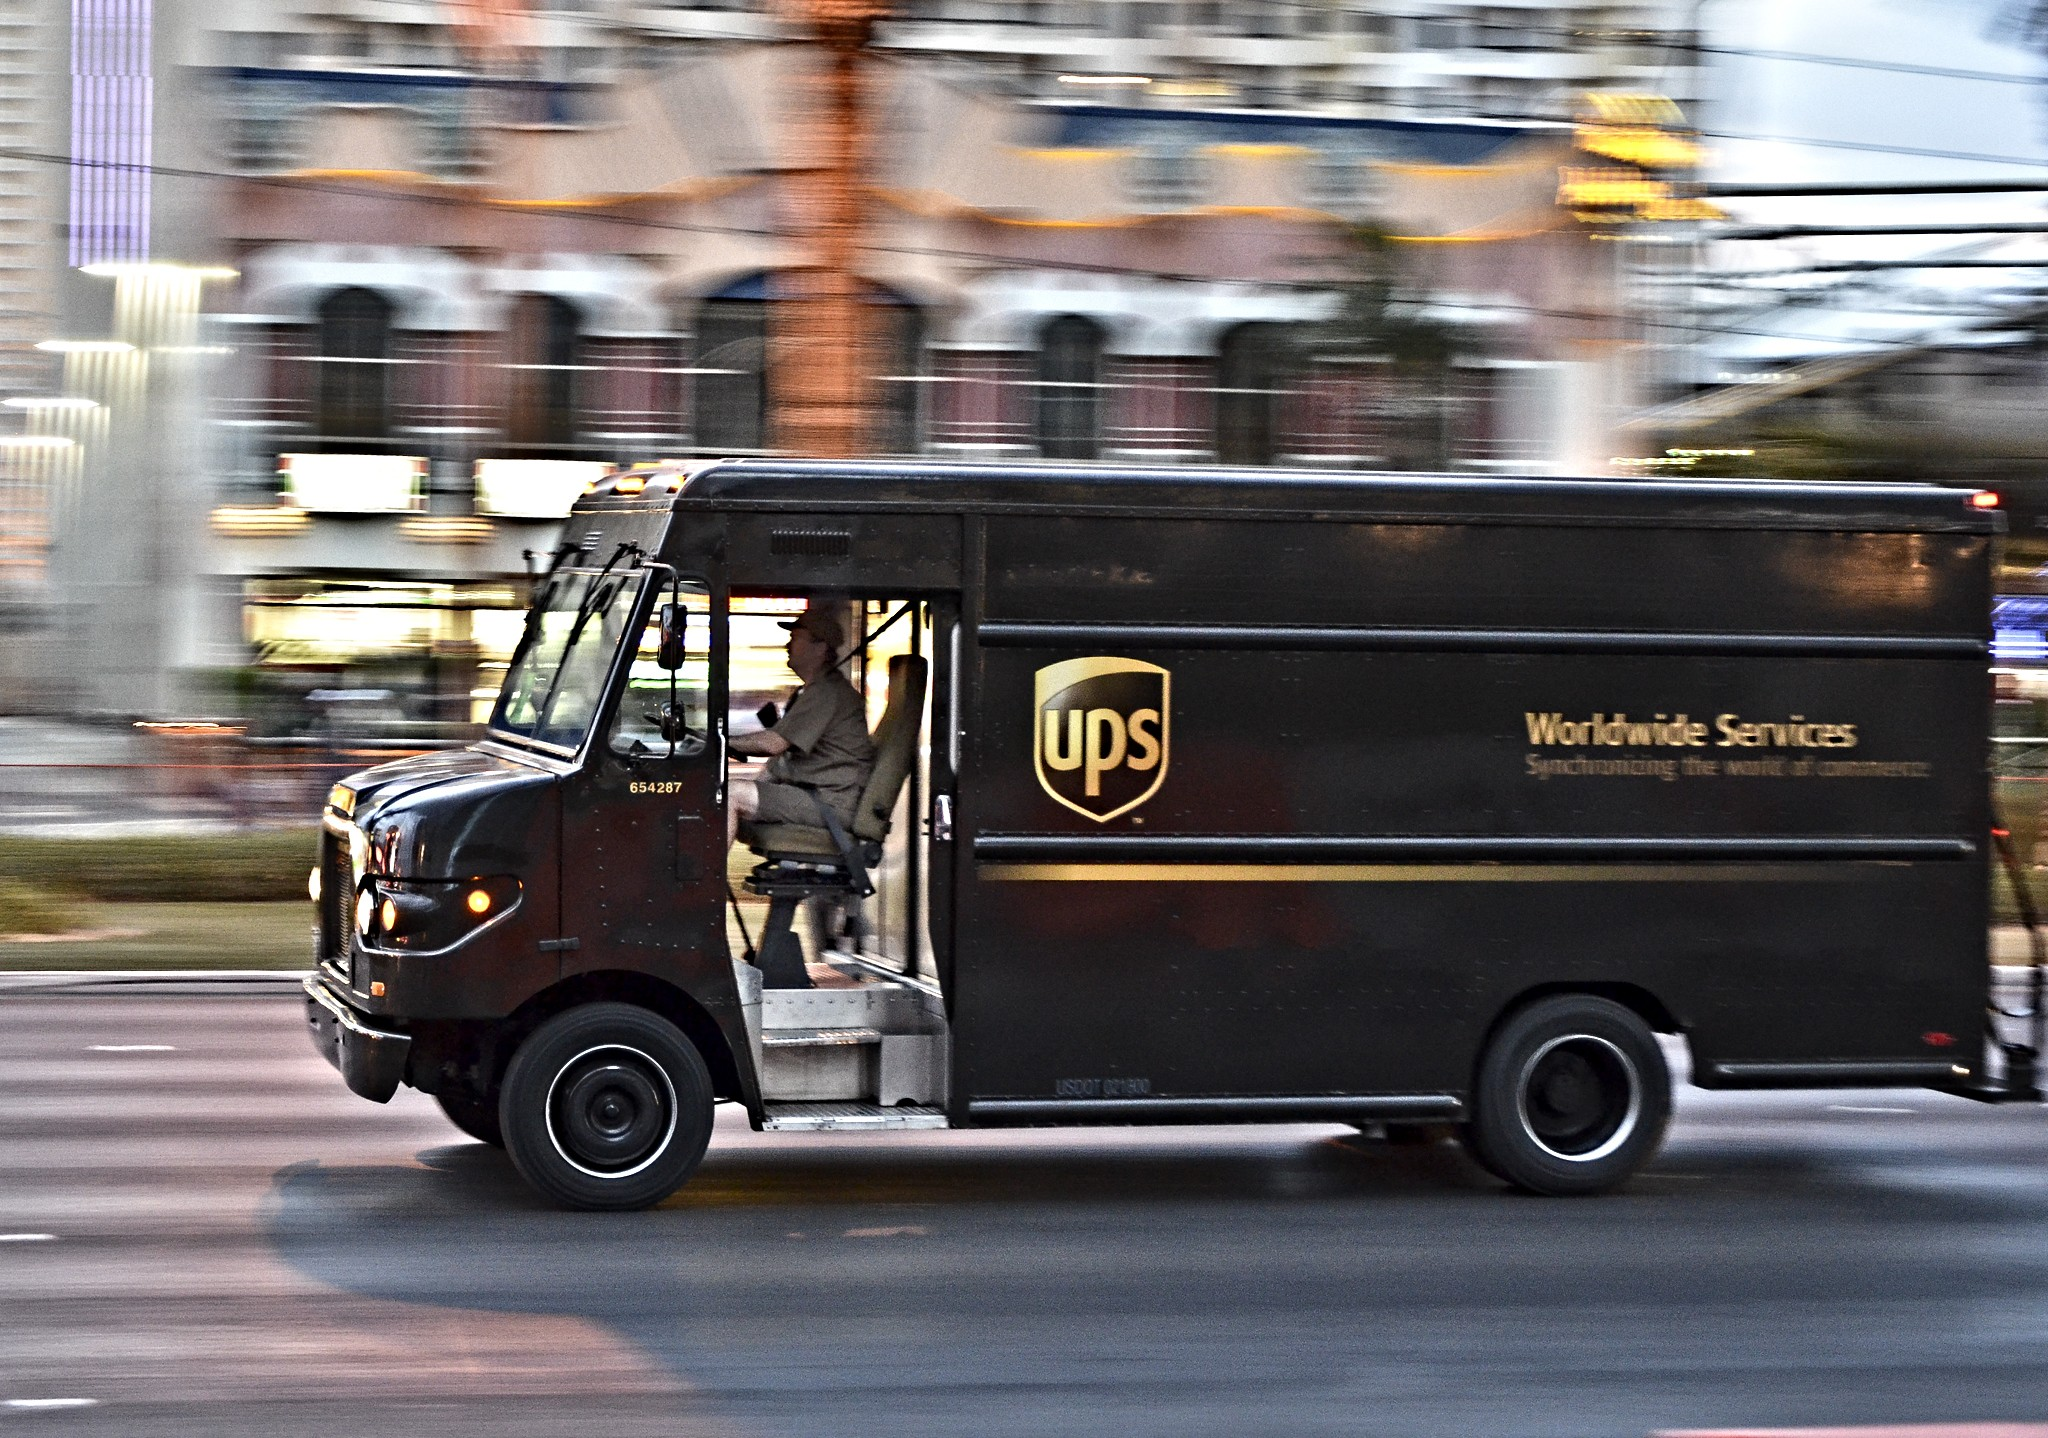 UPS Fires 32-Year Black Employee After Failed Drug Test Despite His Medical-Marijuana Card